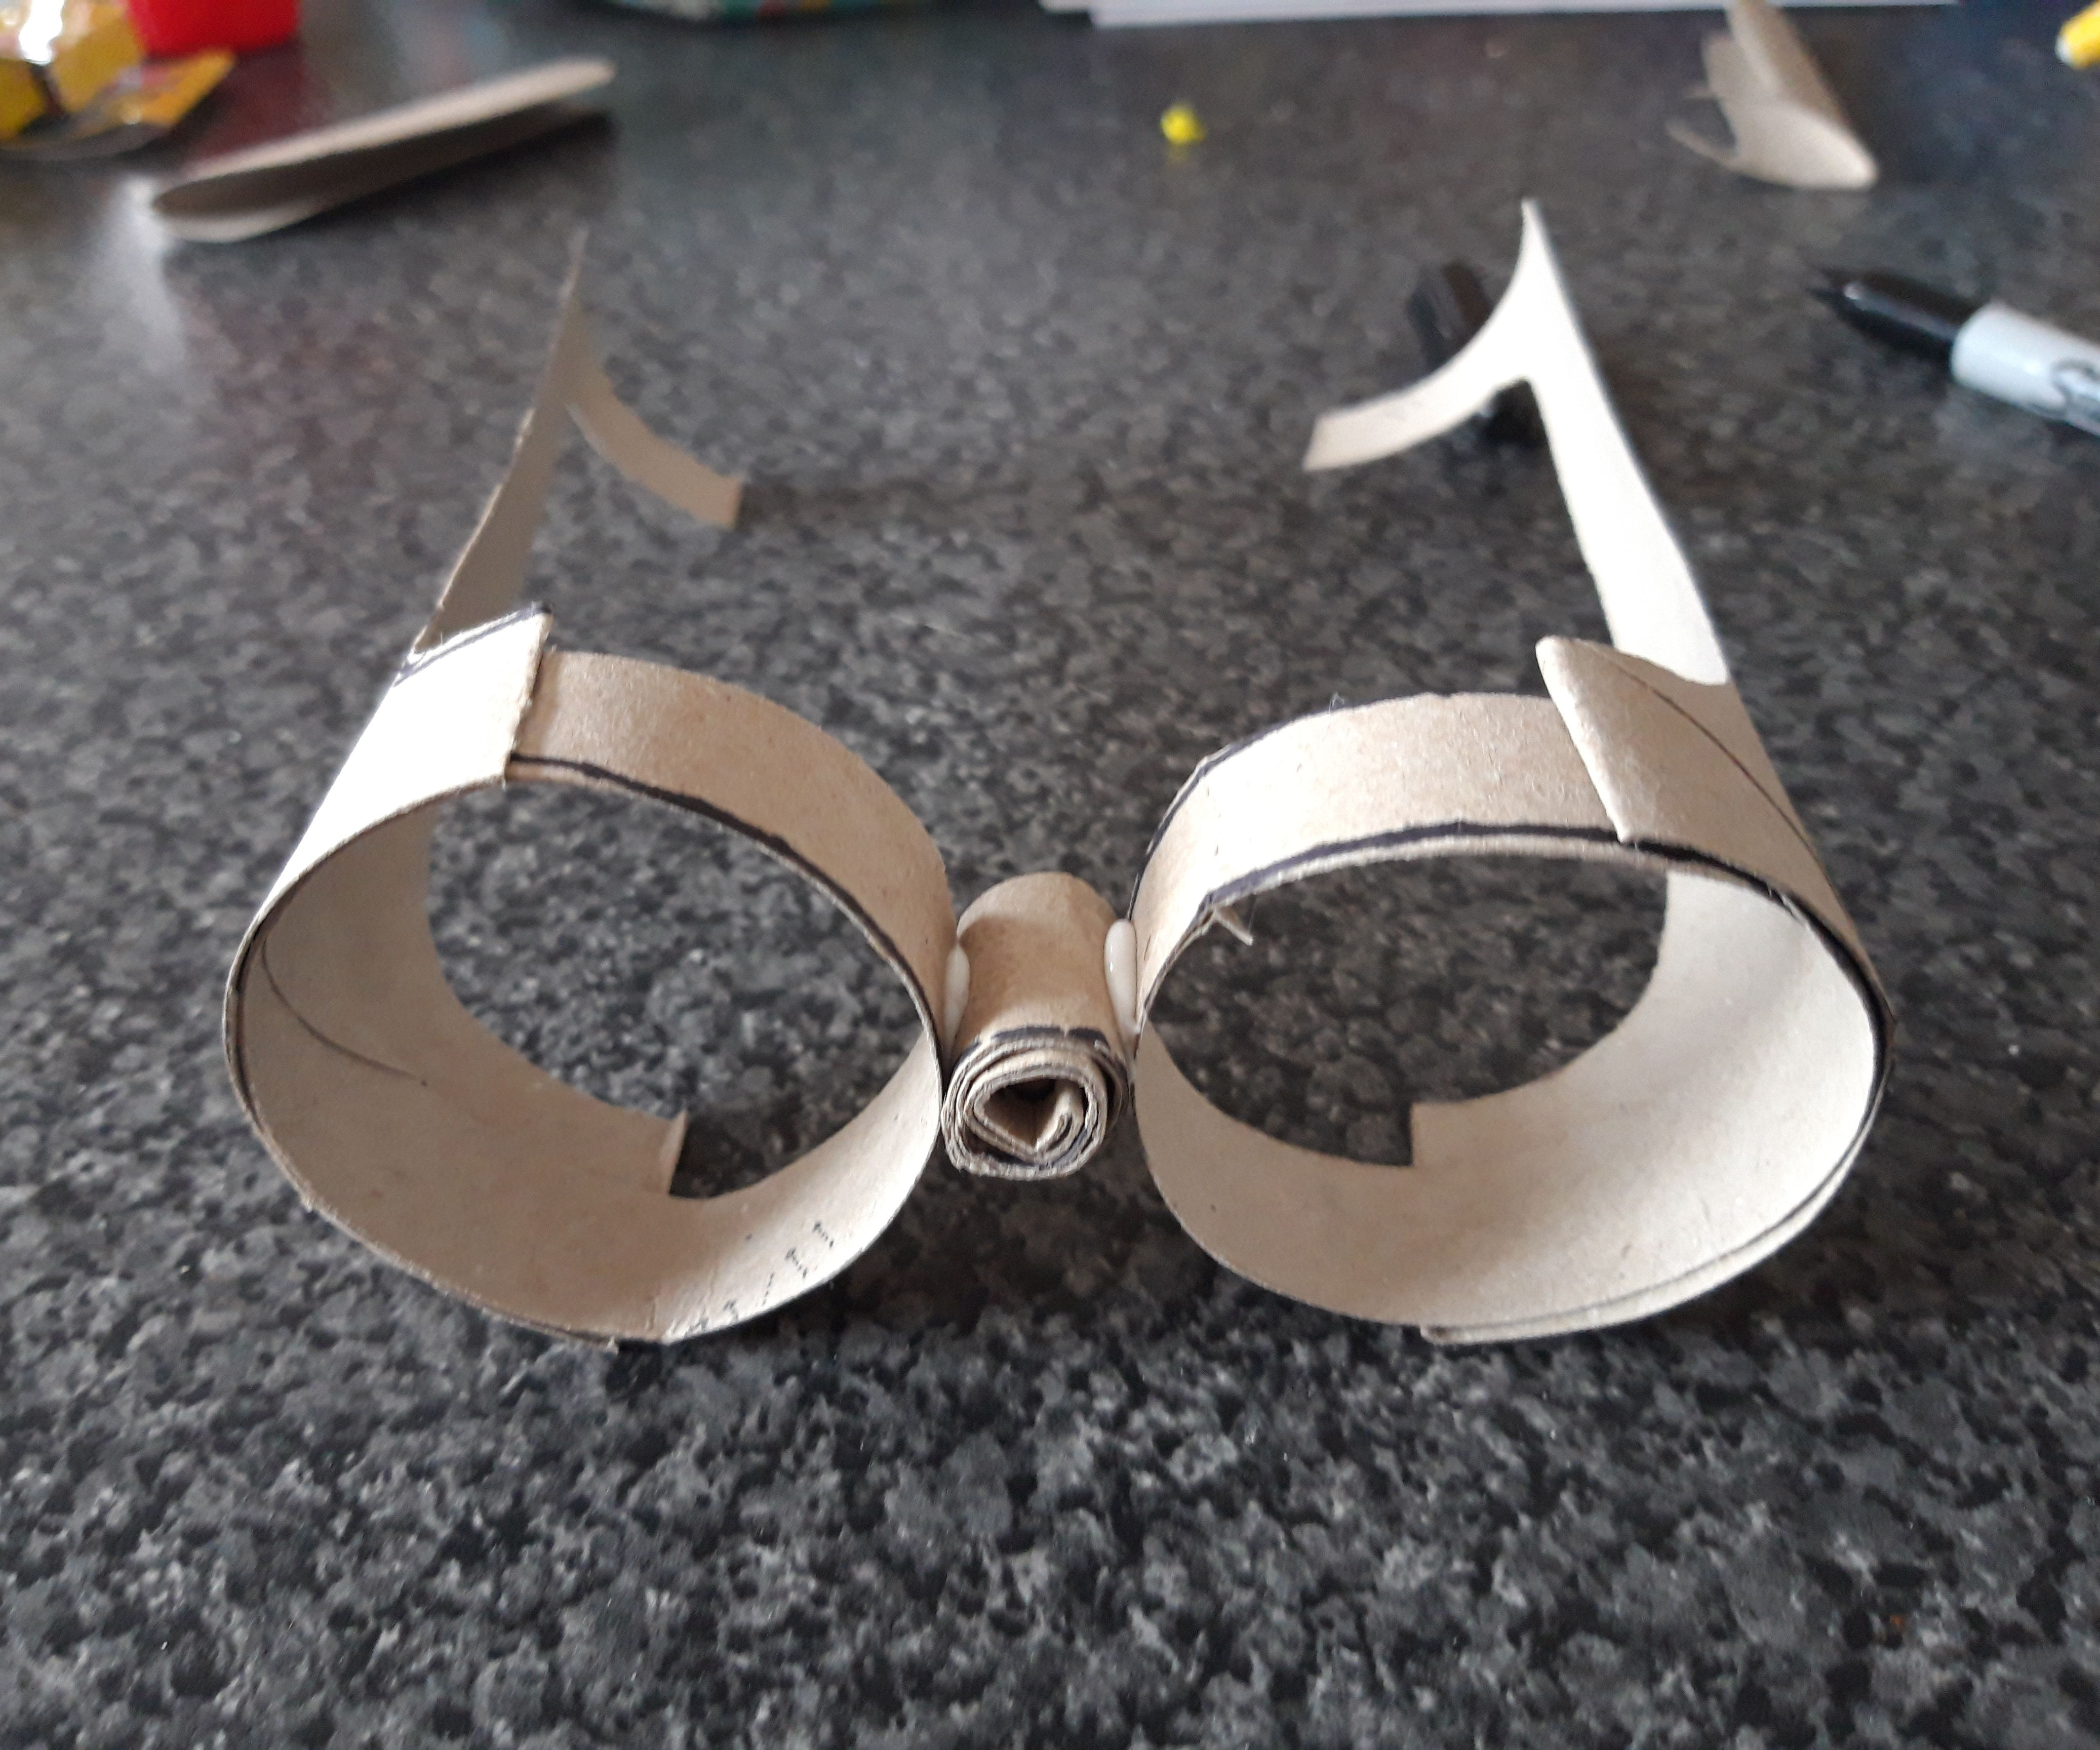 5 Minute Kithchen Roll Spectacles